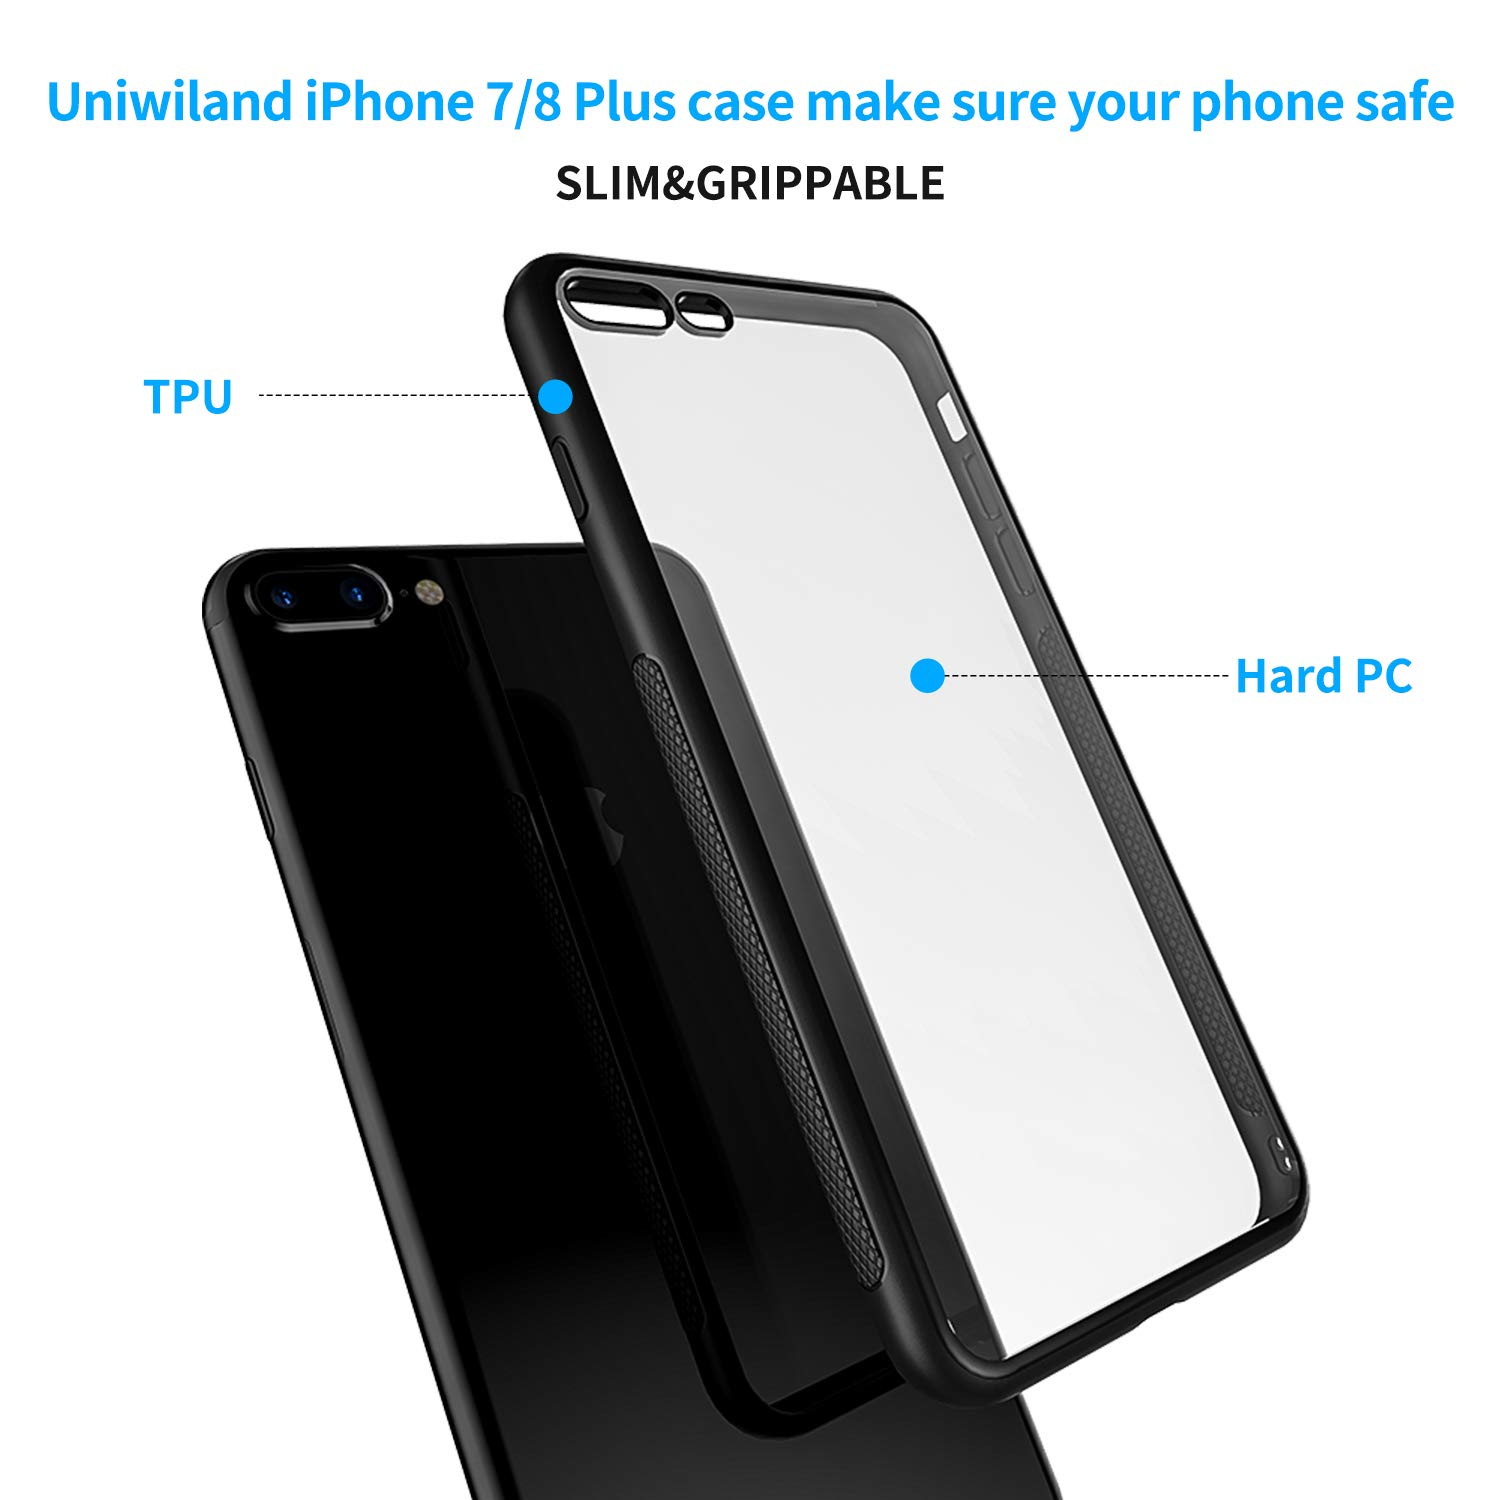 Uniwiland Iphone 7 Plus Case 8 Clear 2in1 Gravity Full Cover Tempered Glass For 6 Backing Drop Protection With 033mm Screen